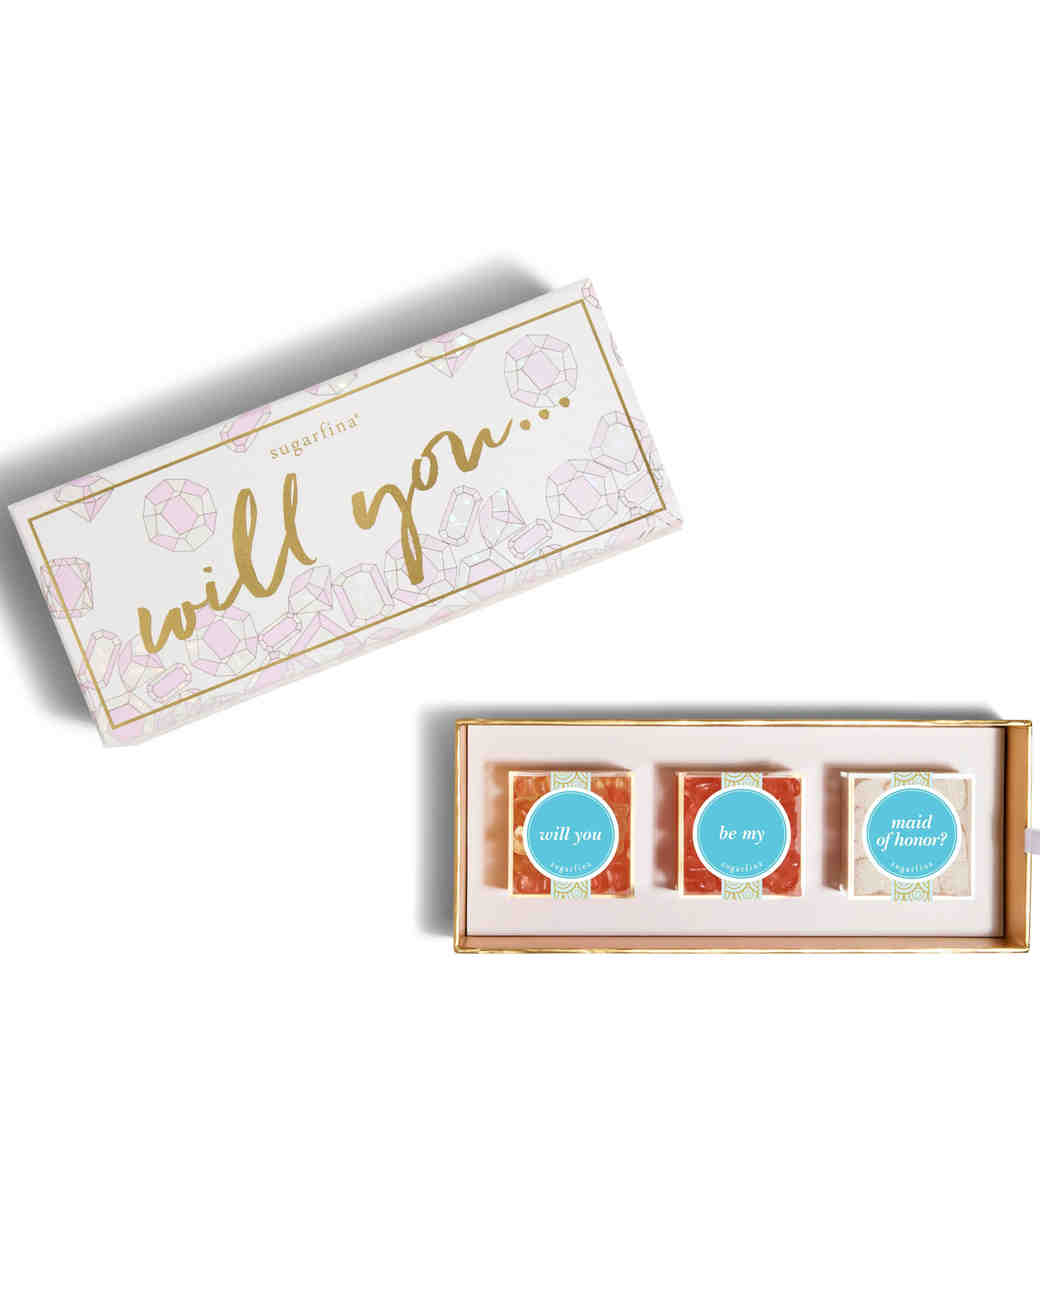 maid of honor proposal candy box